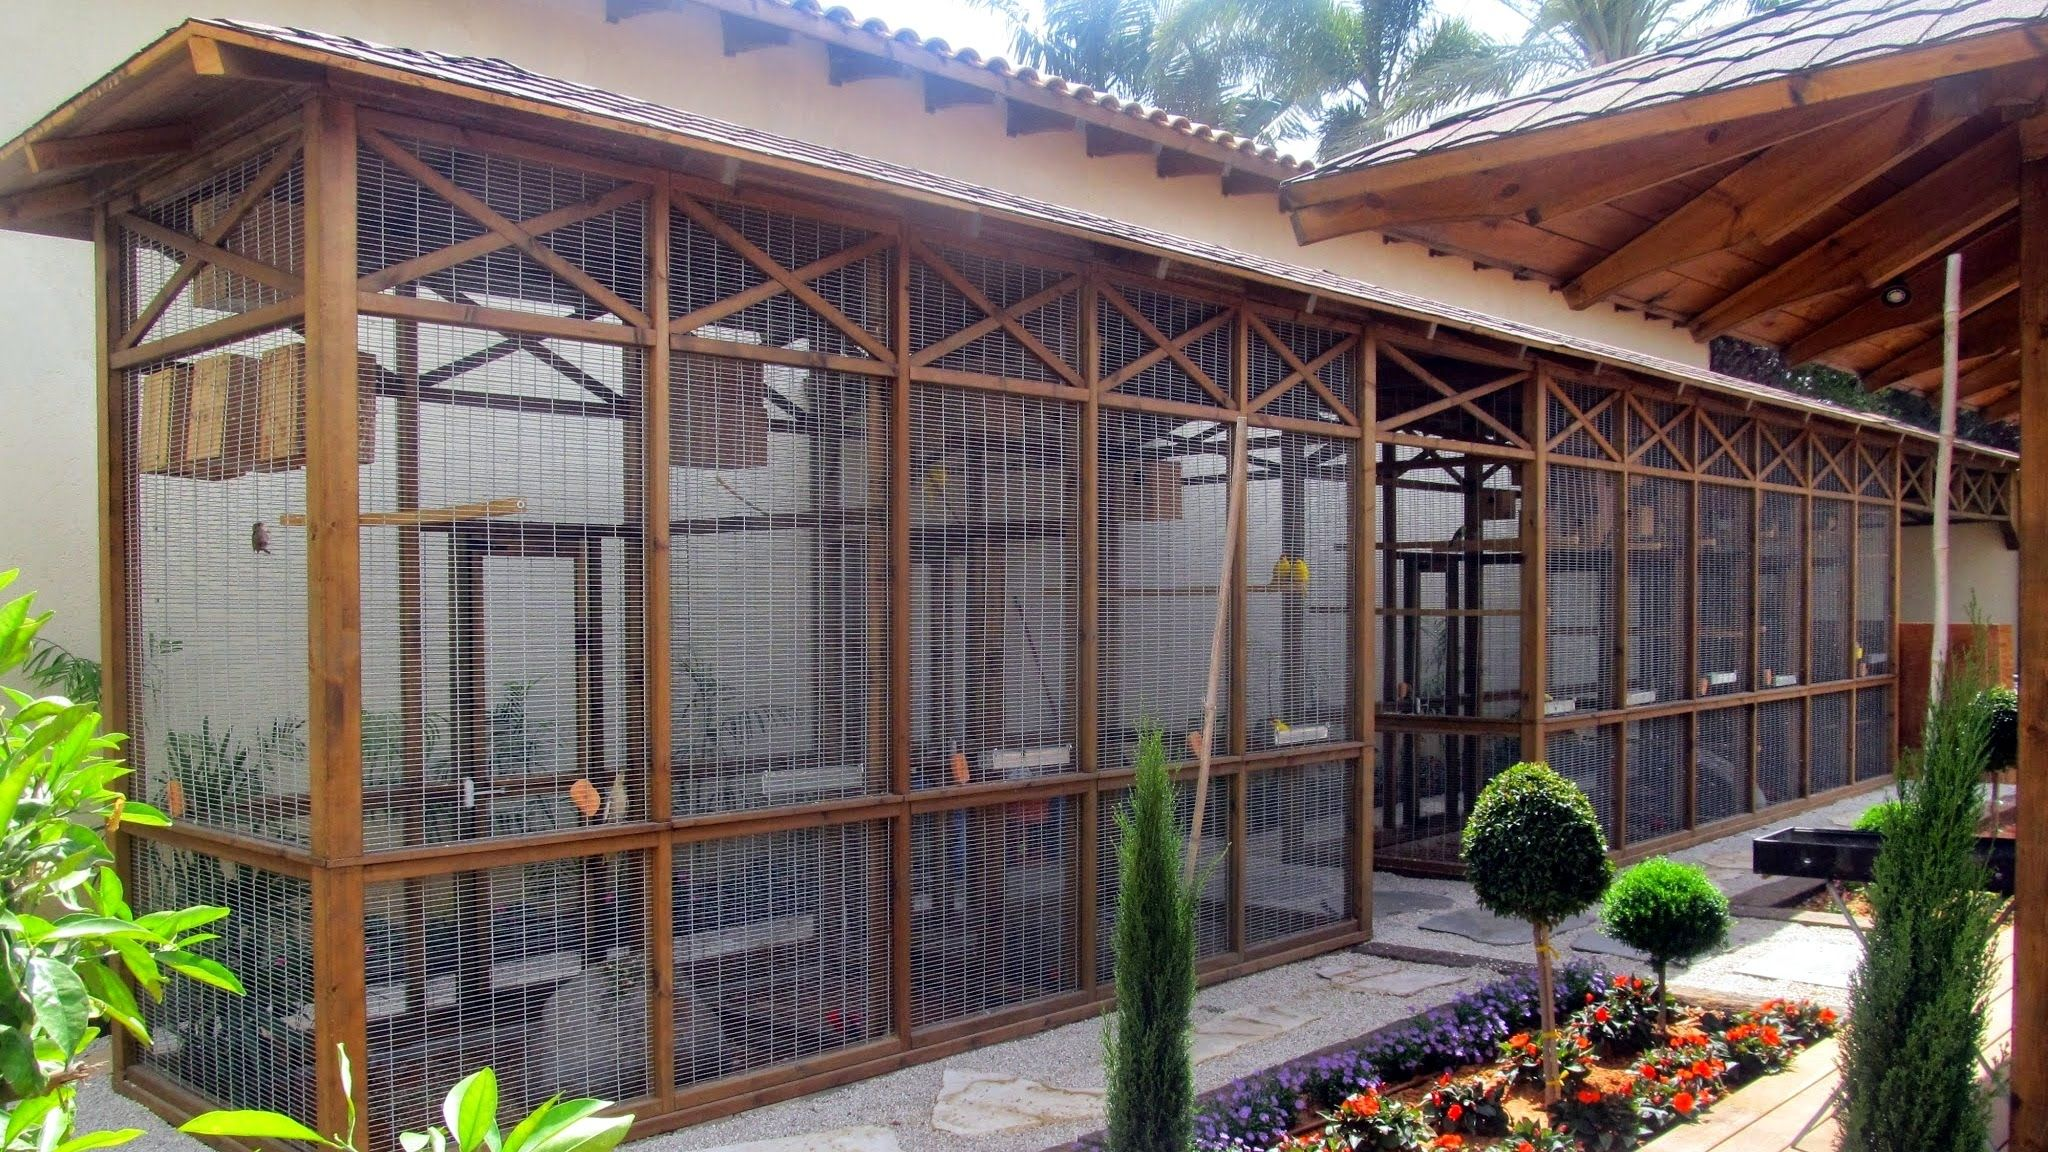 Garden Aviary Construction Stages Roof Garden Design Roof Garden Garden Design